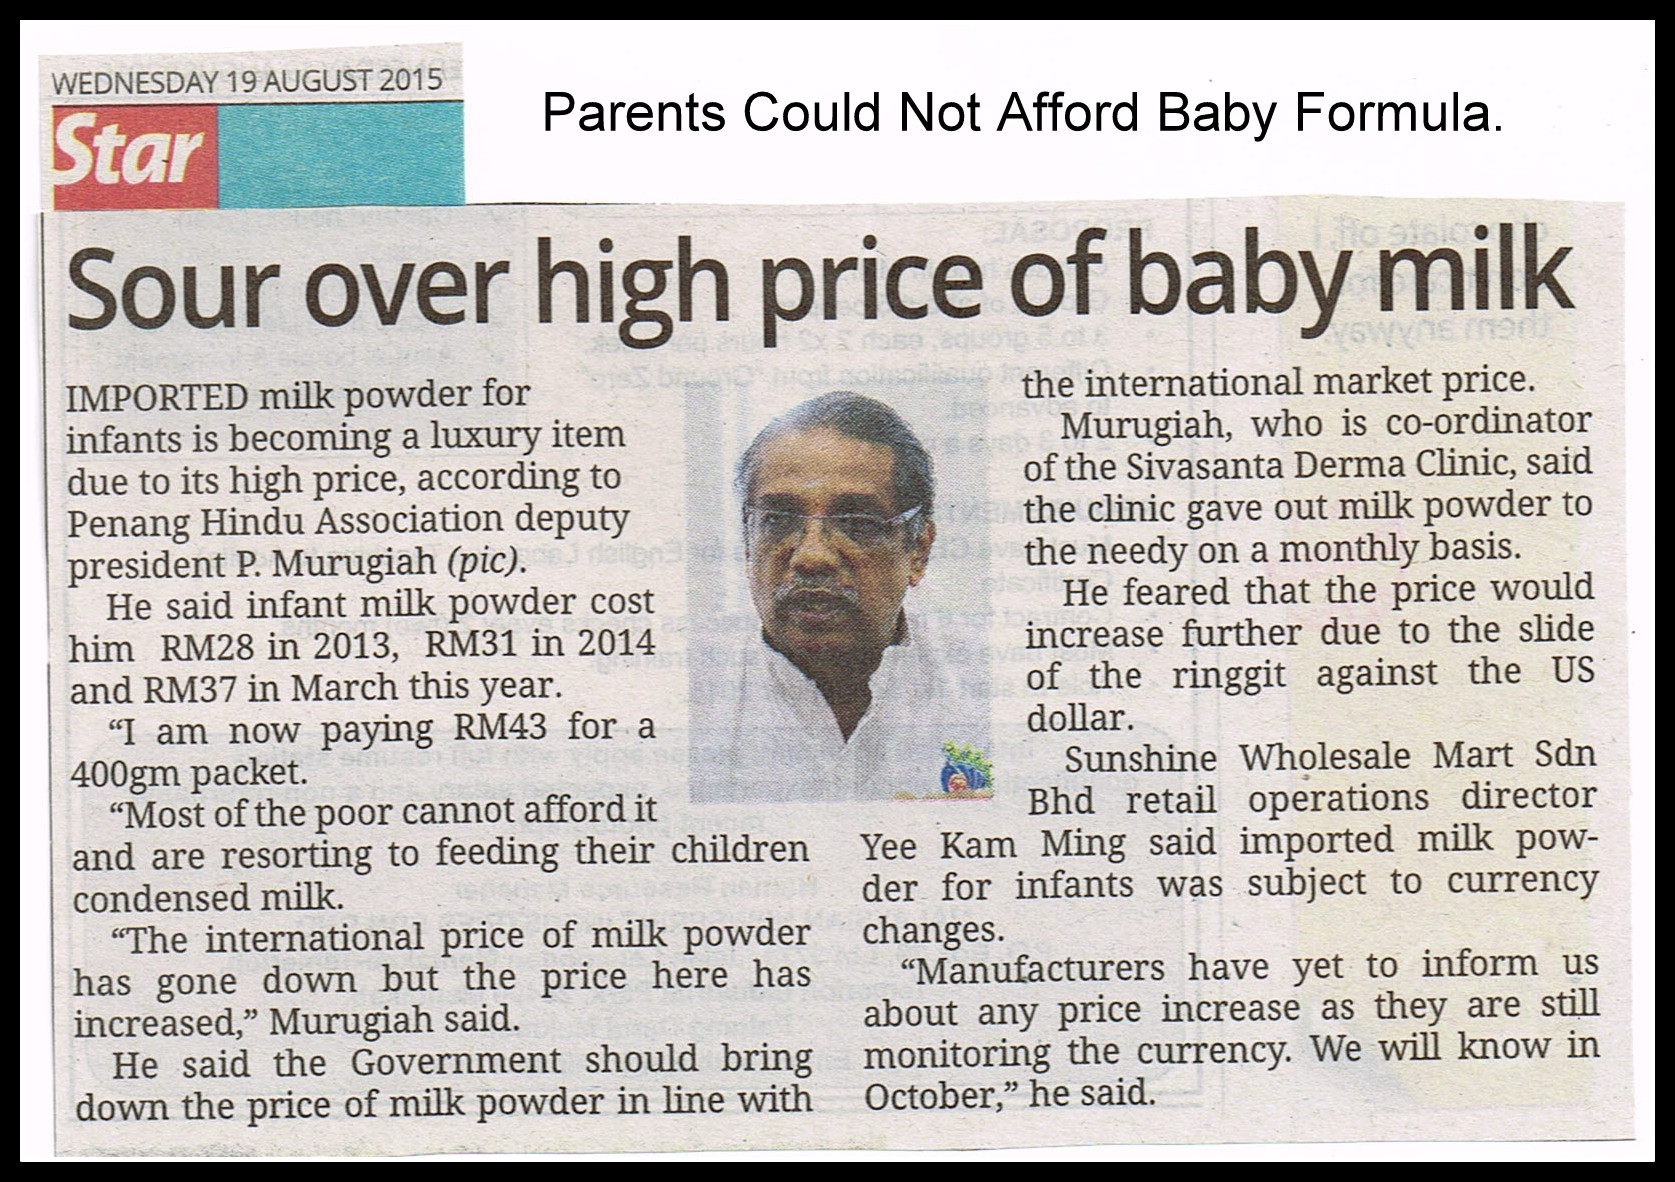 Parents Could Not Afford Baby Formula.